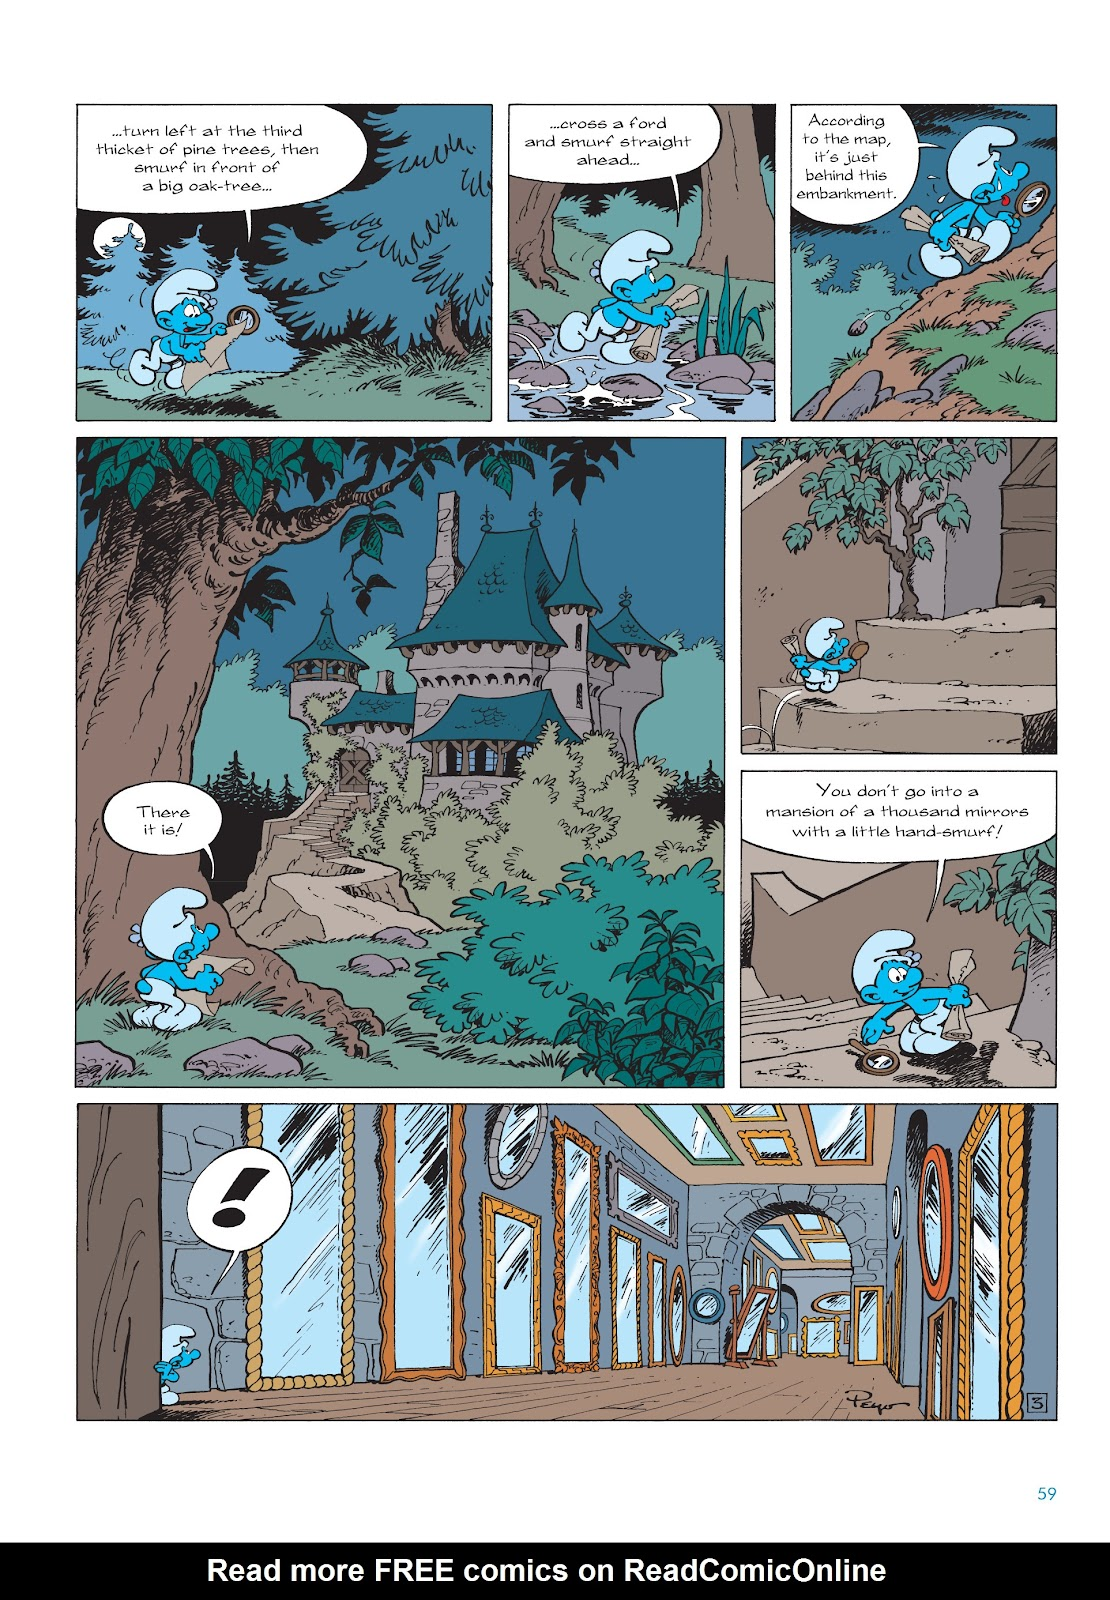 Read online The Smurfs comic -  Issue #22 - 60